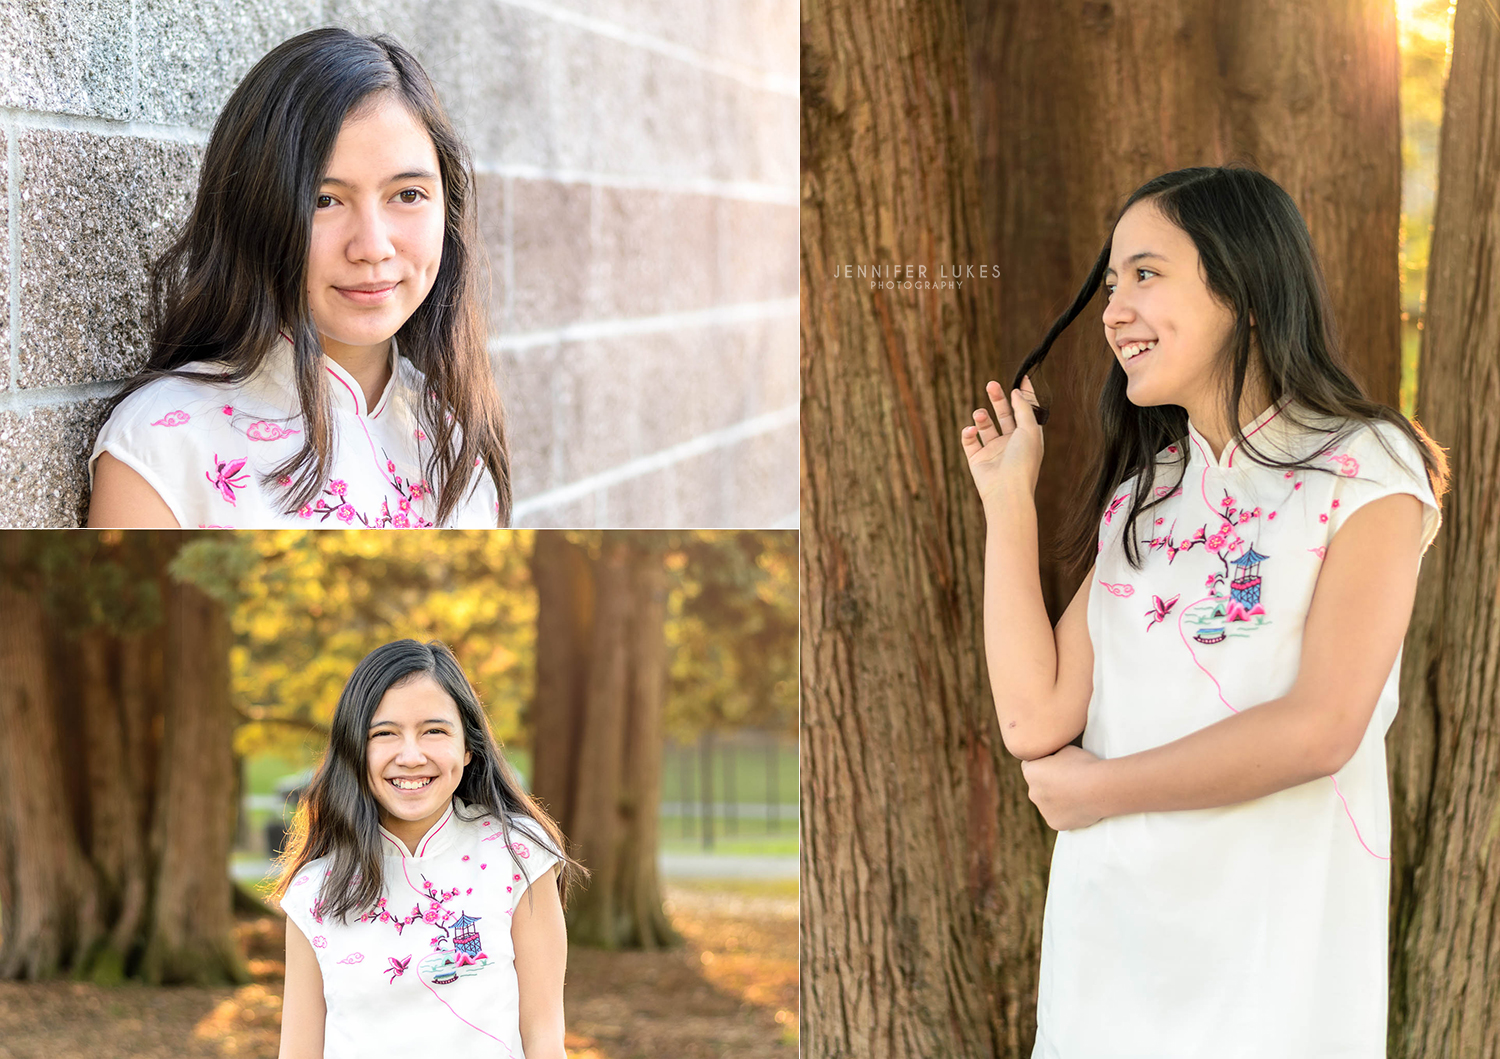 Seattle tween girl photo session representing her Chinese heritage in a white cheongsam with pink and blue embroidery.